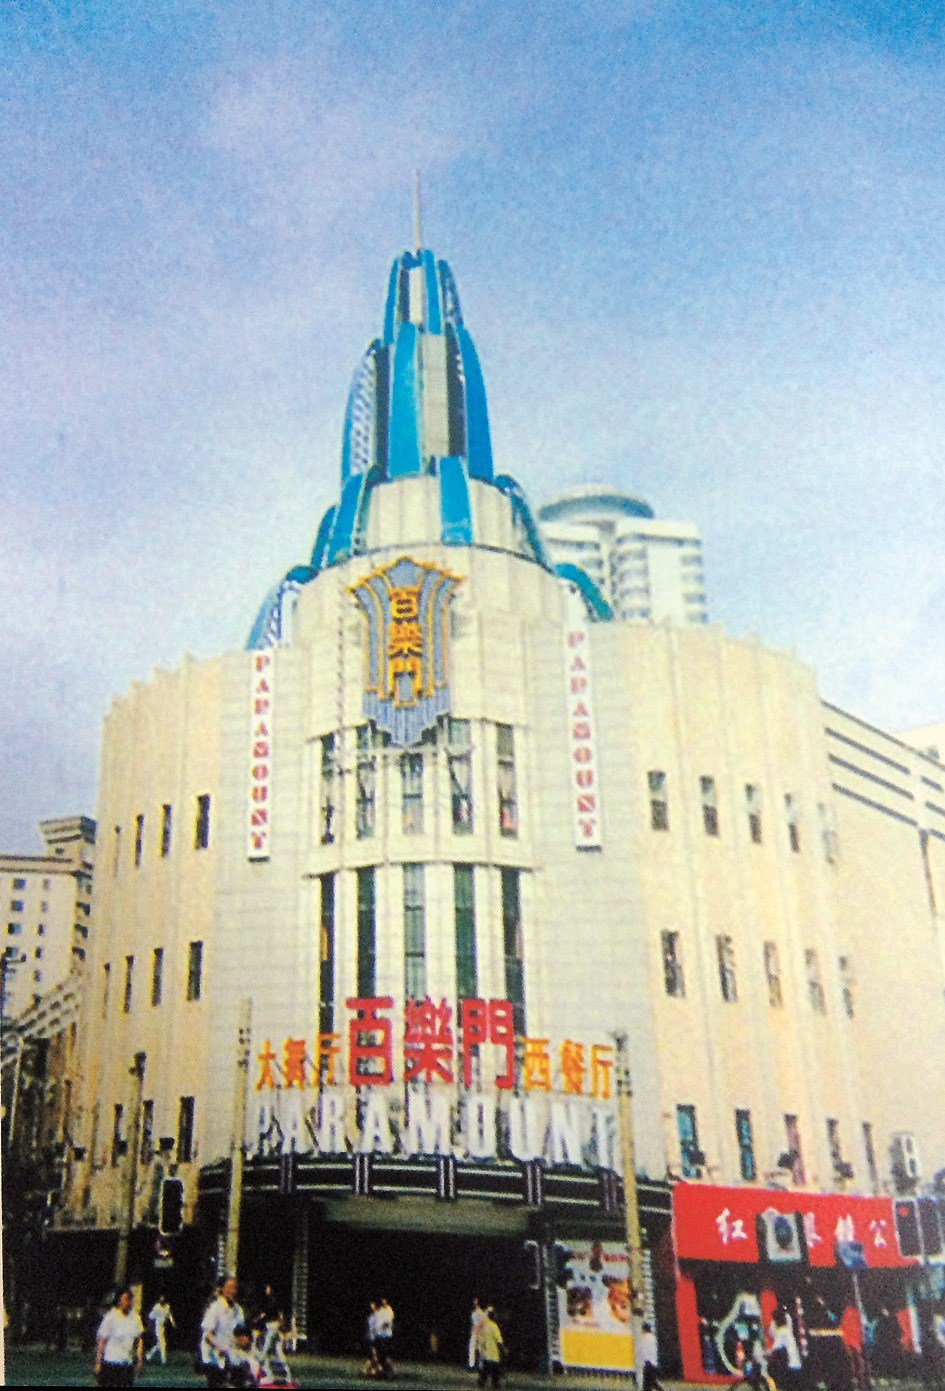 The Paramount in the 1990s was still an imposing landmark in Shanghai.